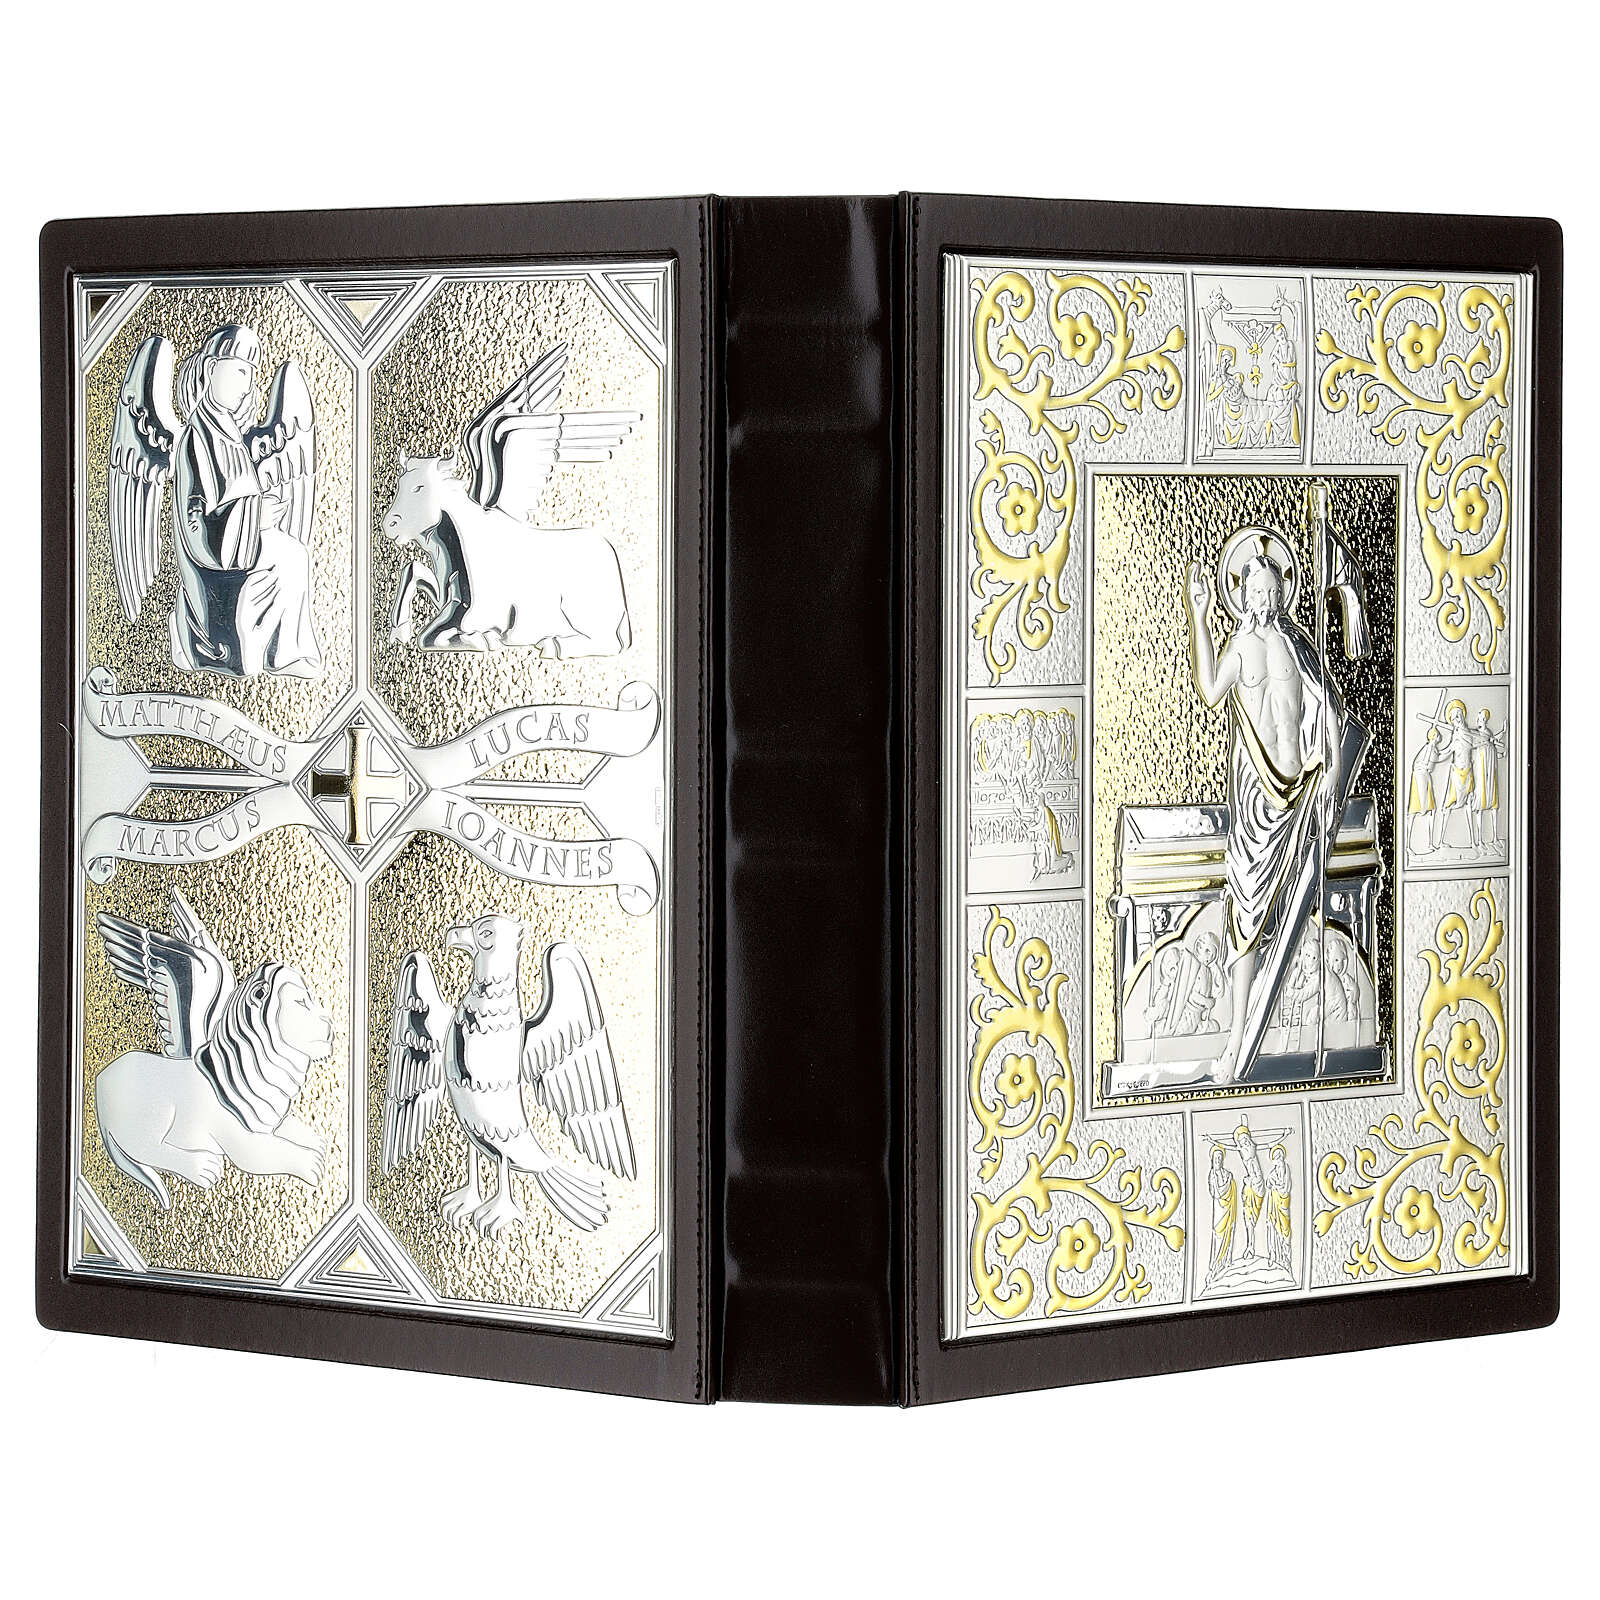 Lectionary cover in Leather with double plaque 4